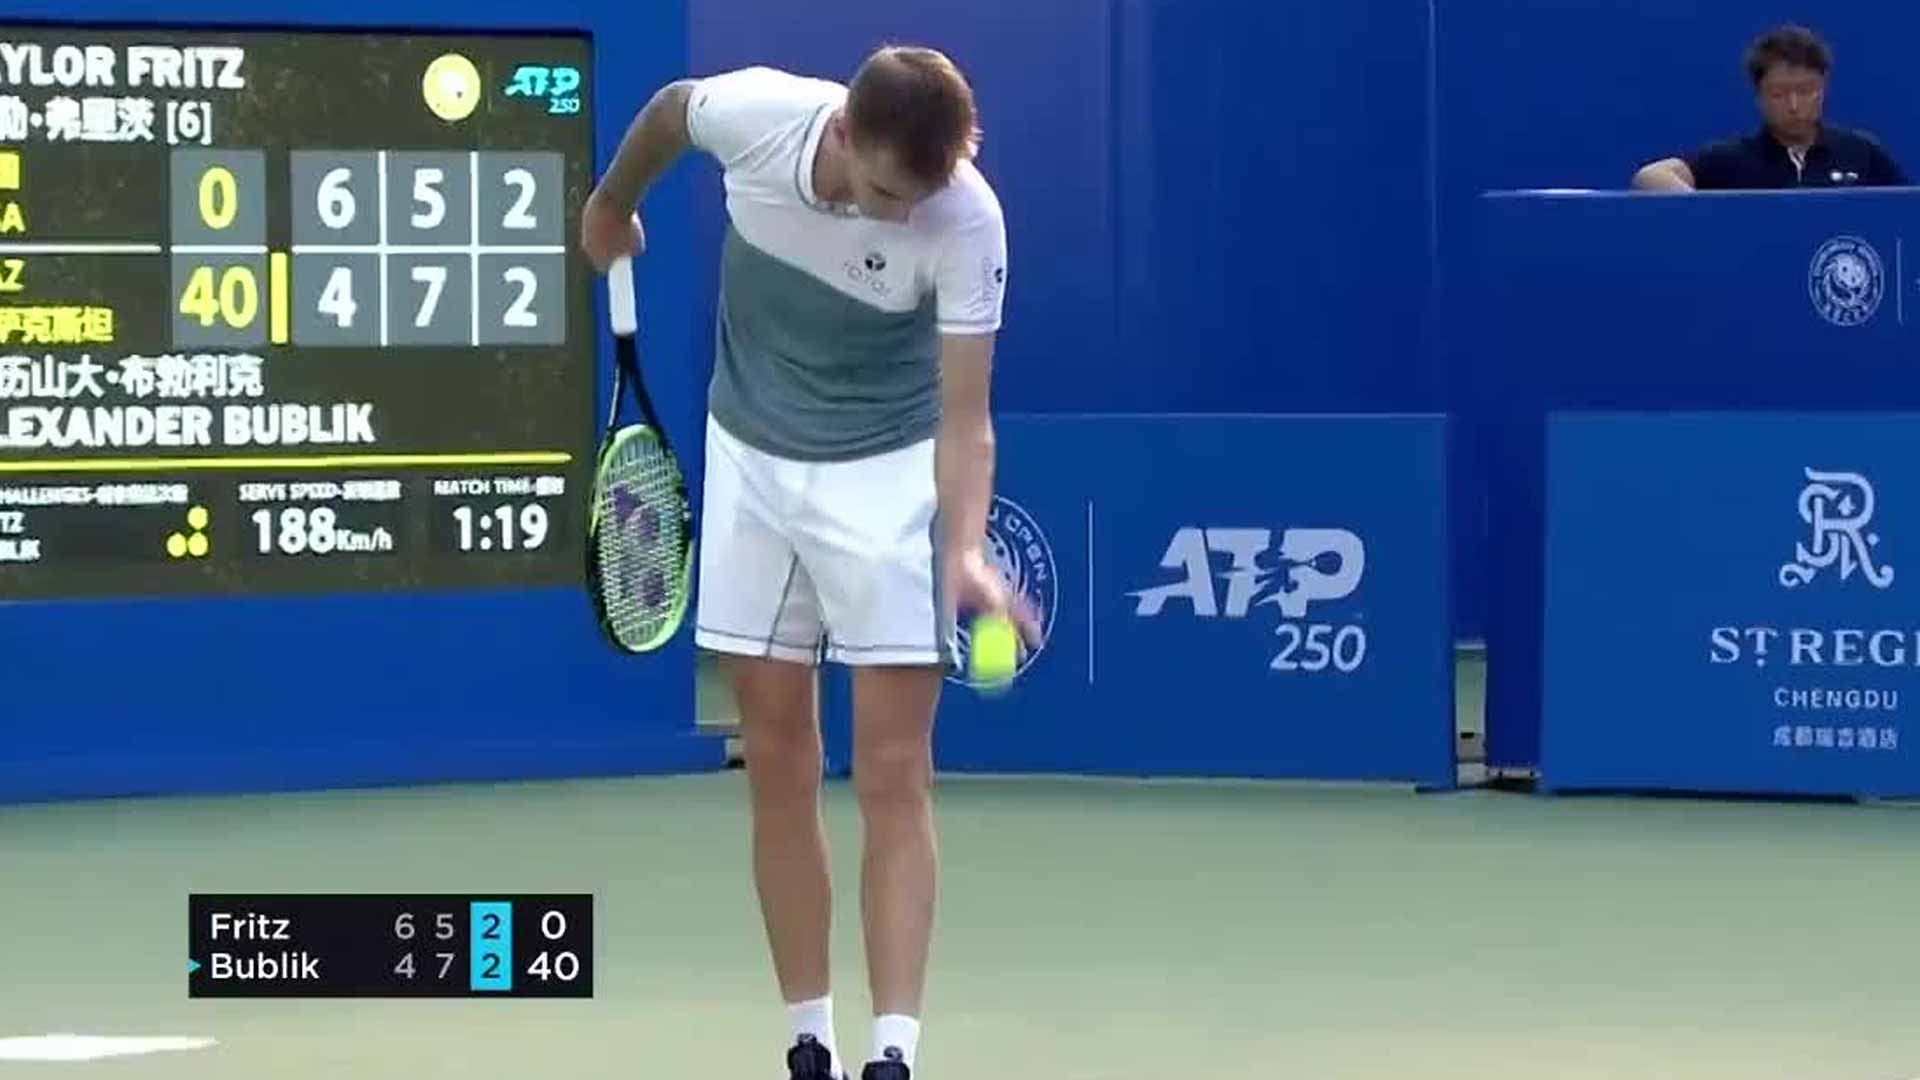 Alexander Bublik hits an underarm serve against Taylor Fritz on Wednesday in Chengdu